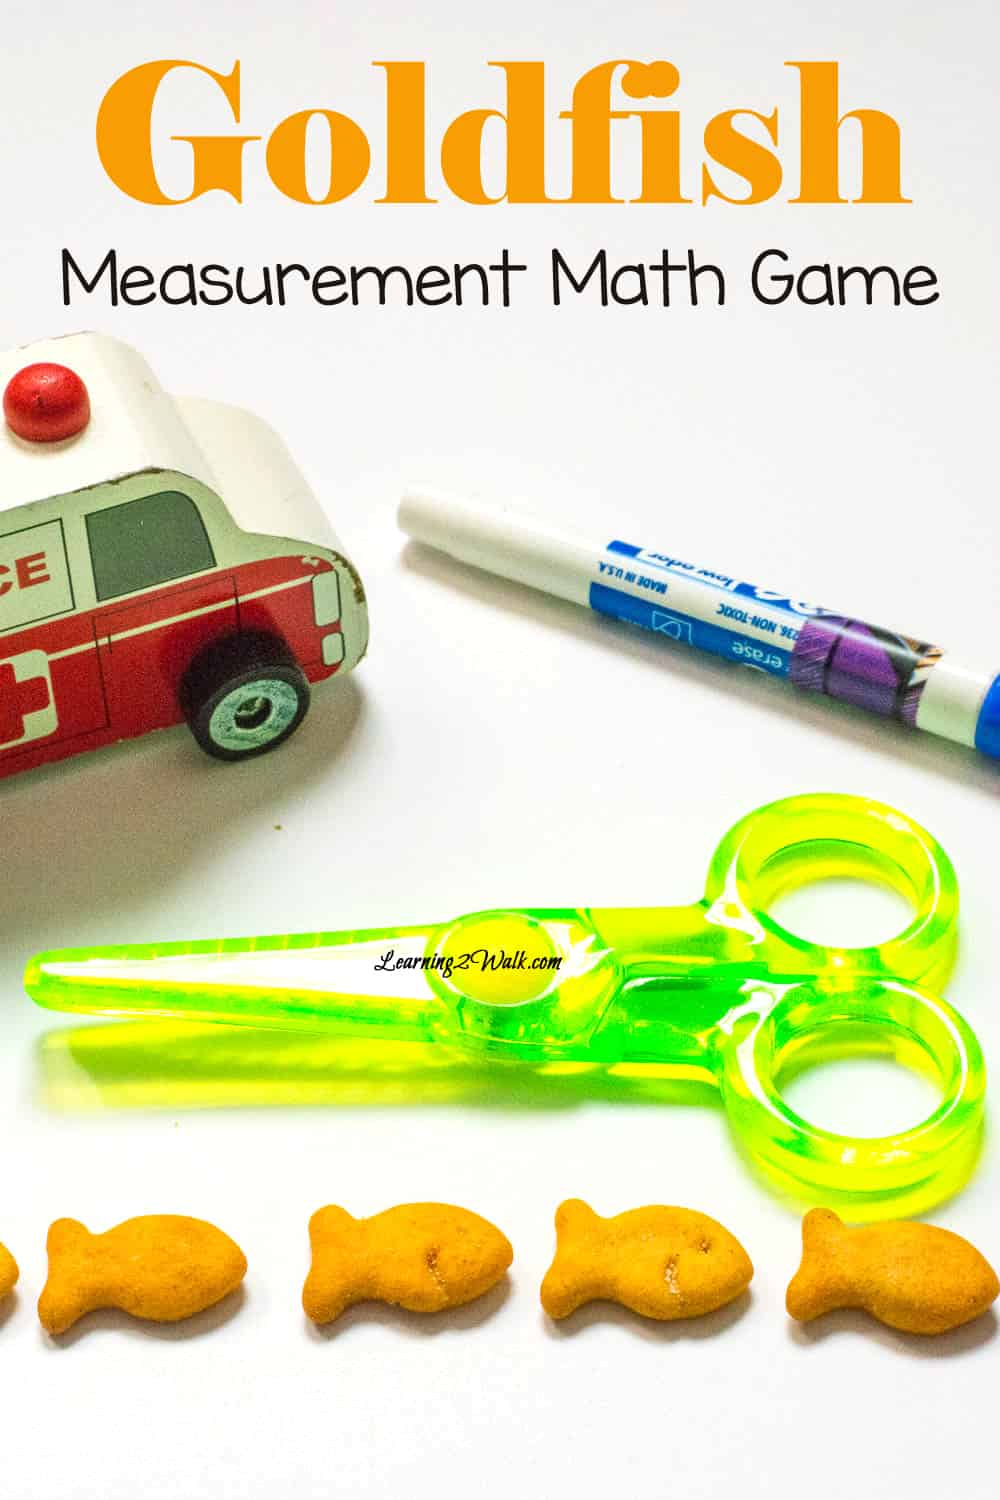 Have your kids work on measurement and guessing with this fun goldfish measurement math game